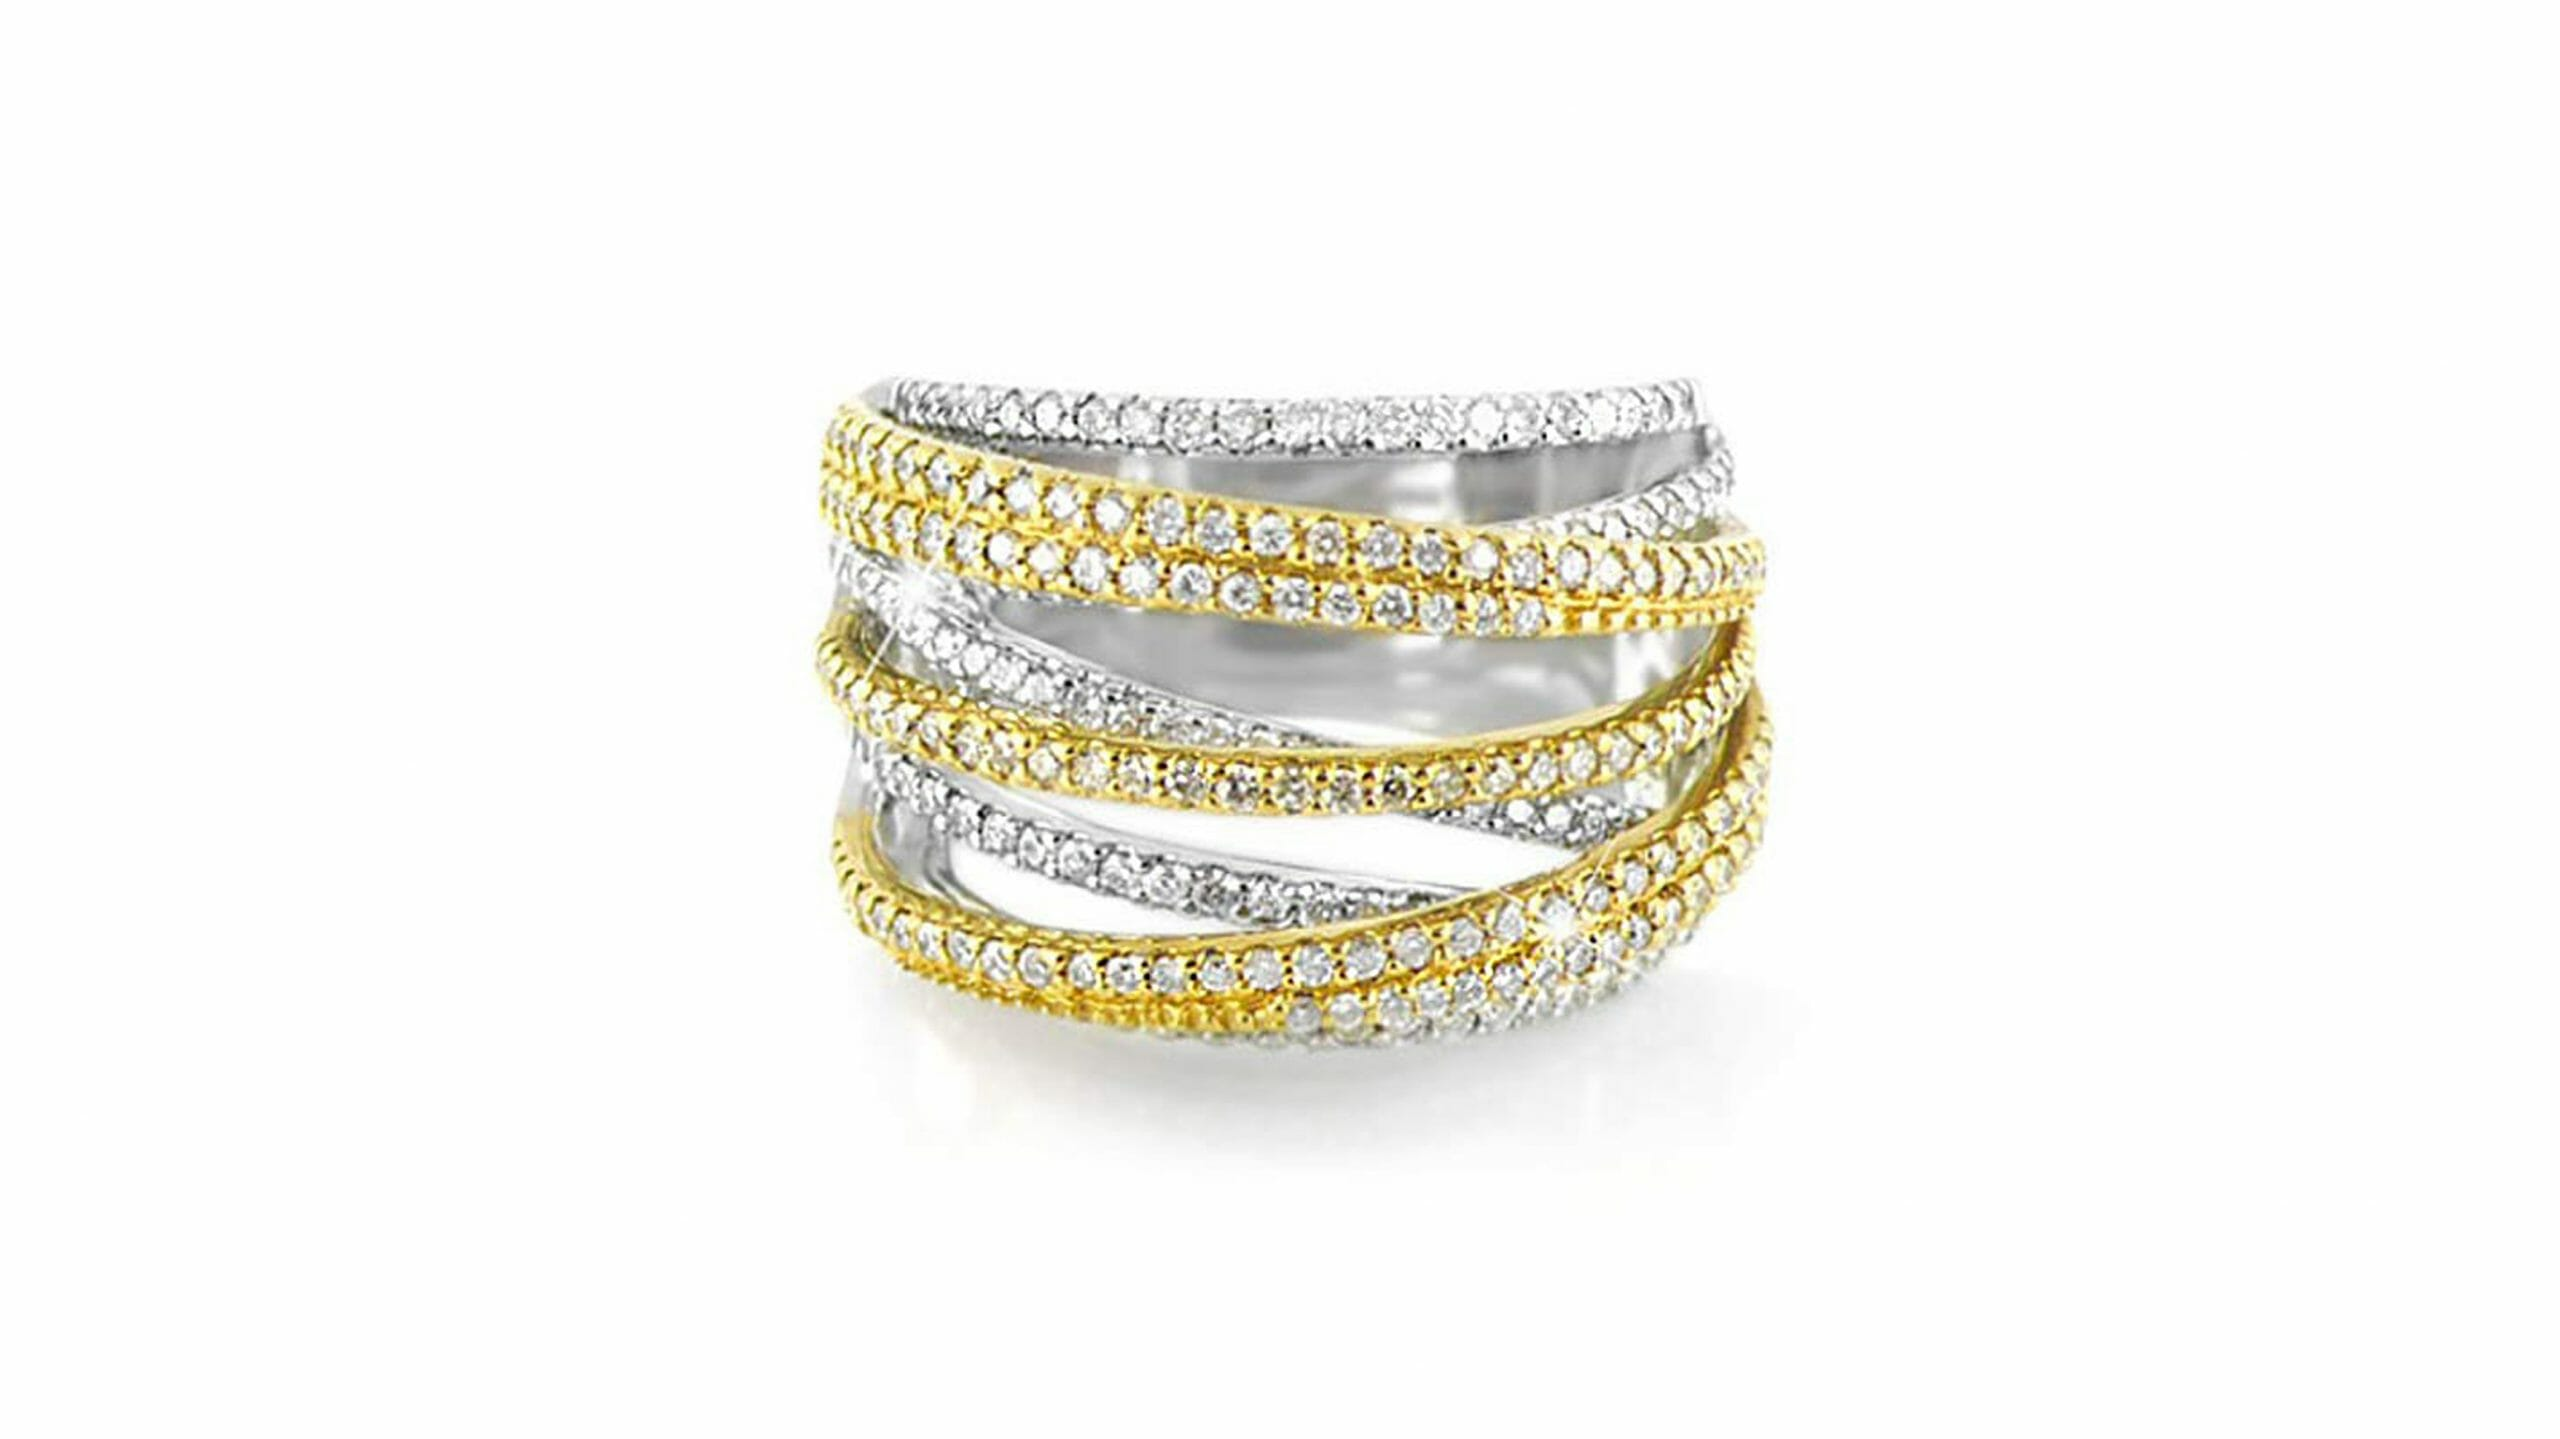 two tone criss-cross pavé dress ring | 18ct White & Yellow Gold Diamond Ring With Crisscrossing Bands